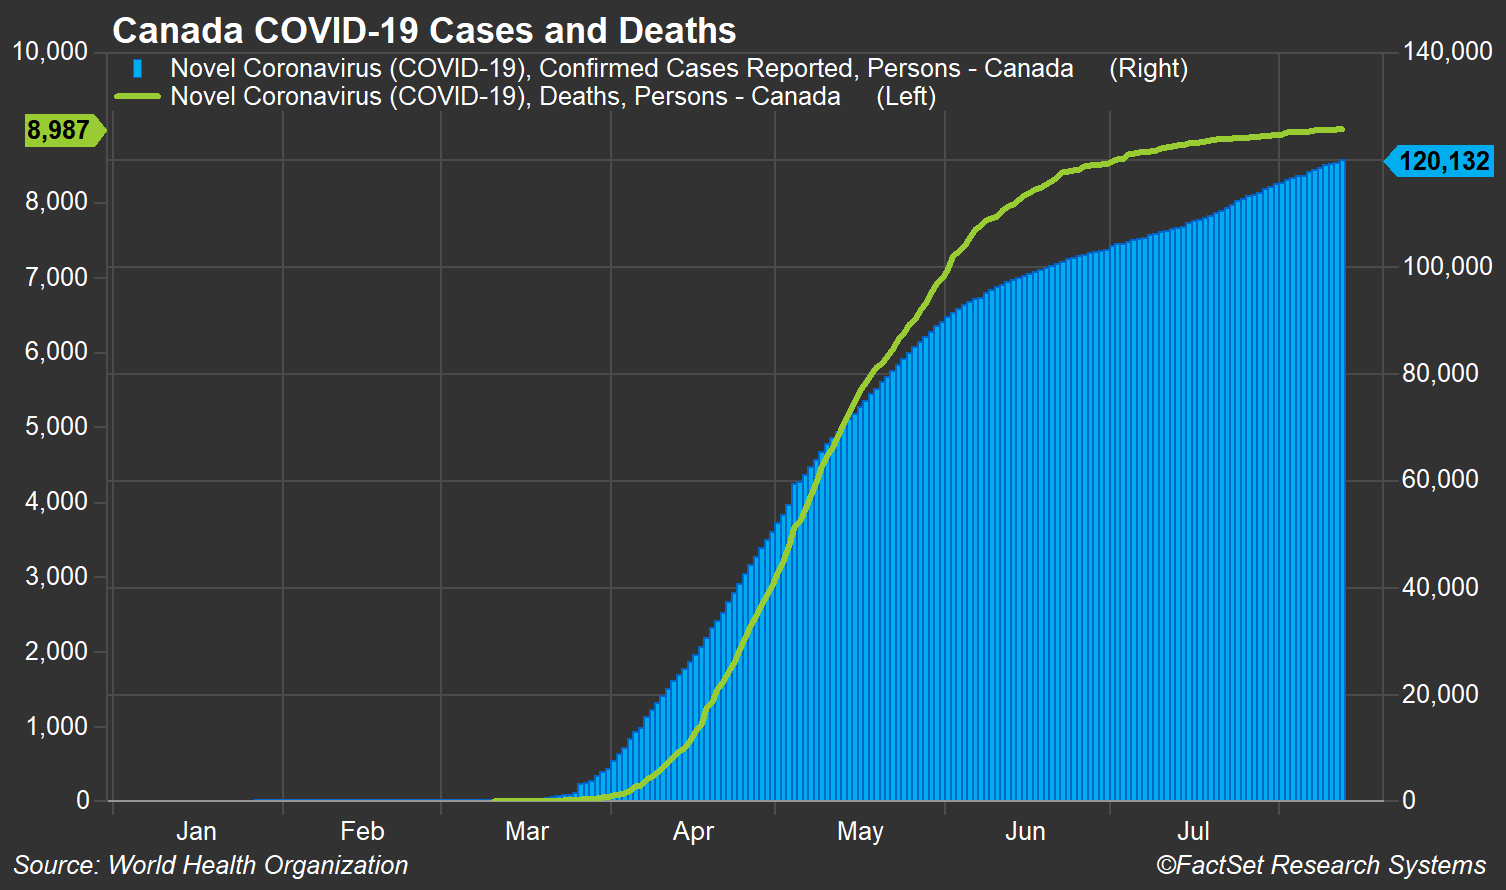 Canada COVID 19 cases and deaths